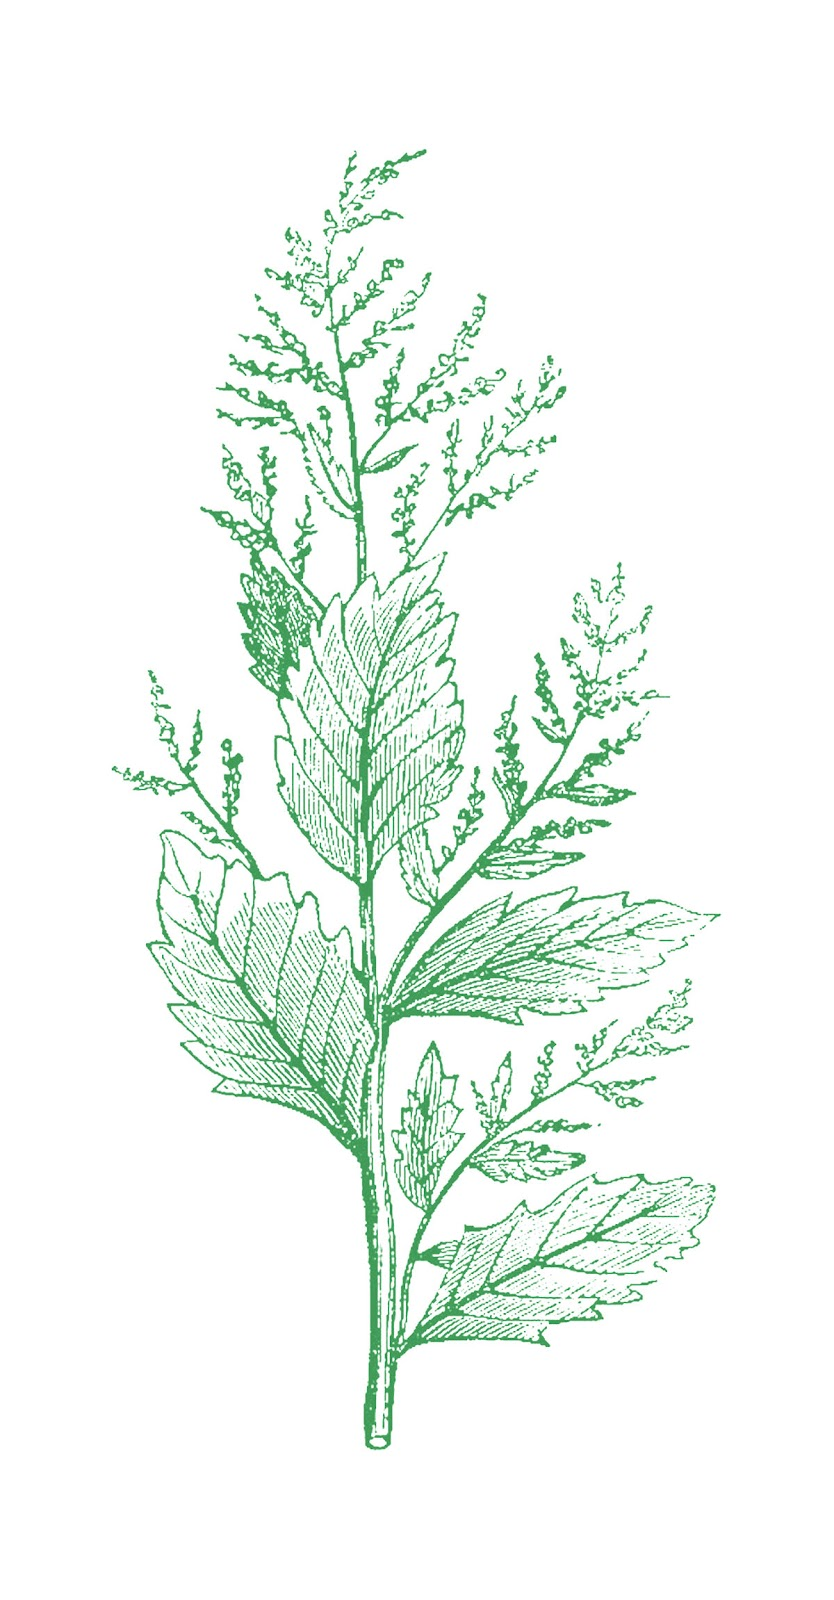 This Is A Vintage Botanical Illustration From Medical And Health Book Again Ive Given You Several Versions Including The Files